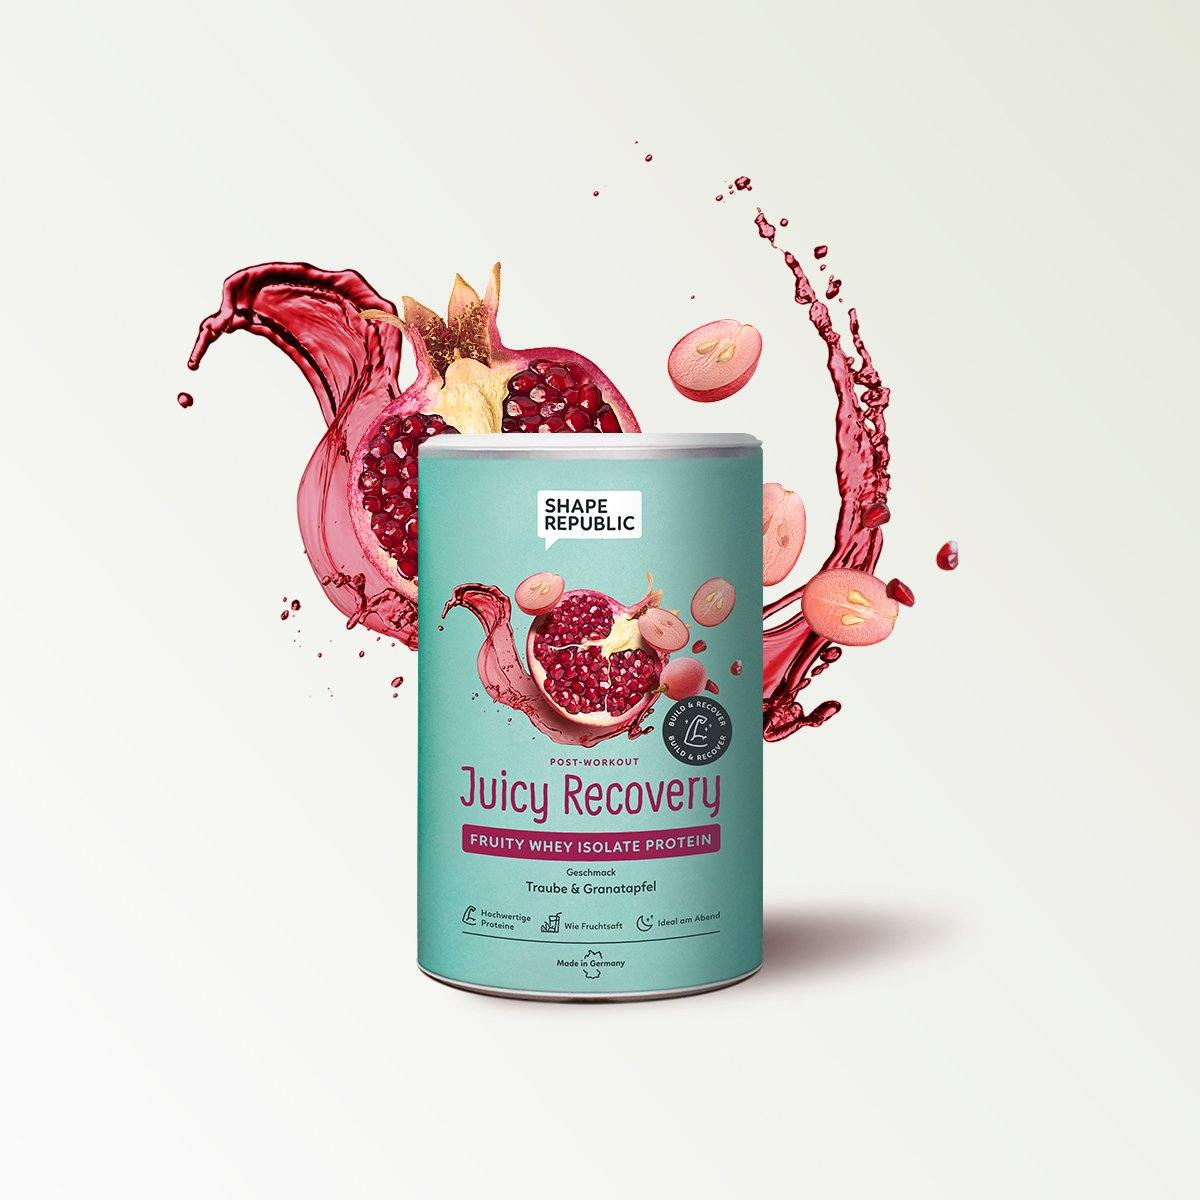 Post Workout Fruity Whey Isolat Protein »Juicy Recovery« (300g) Shape Republic